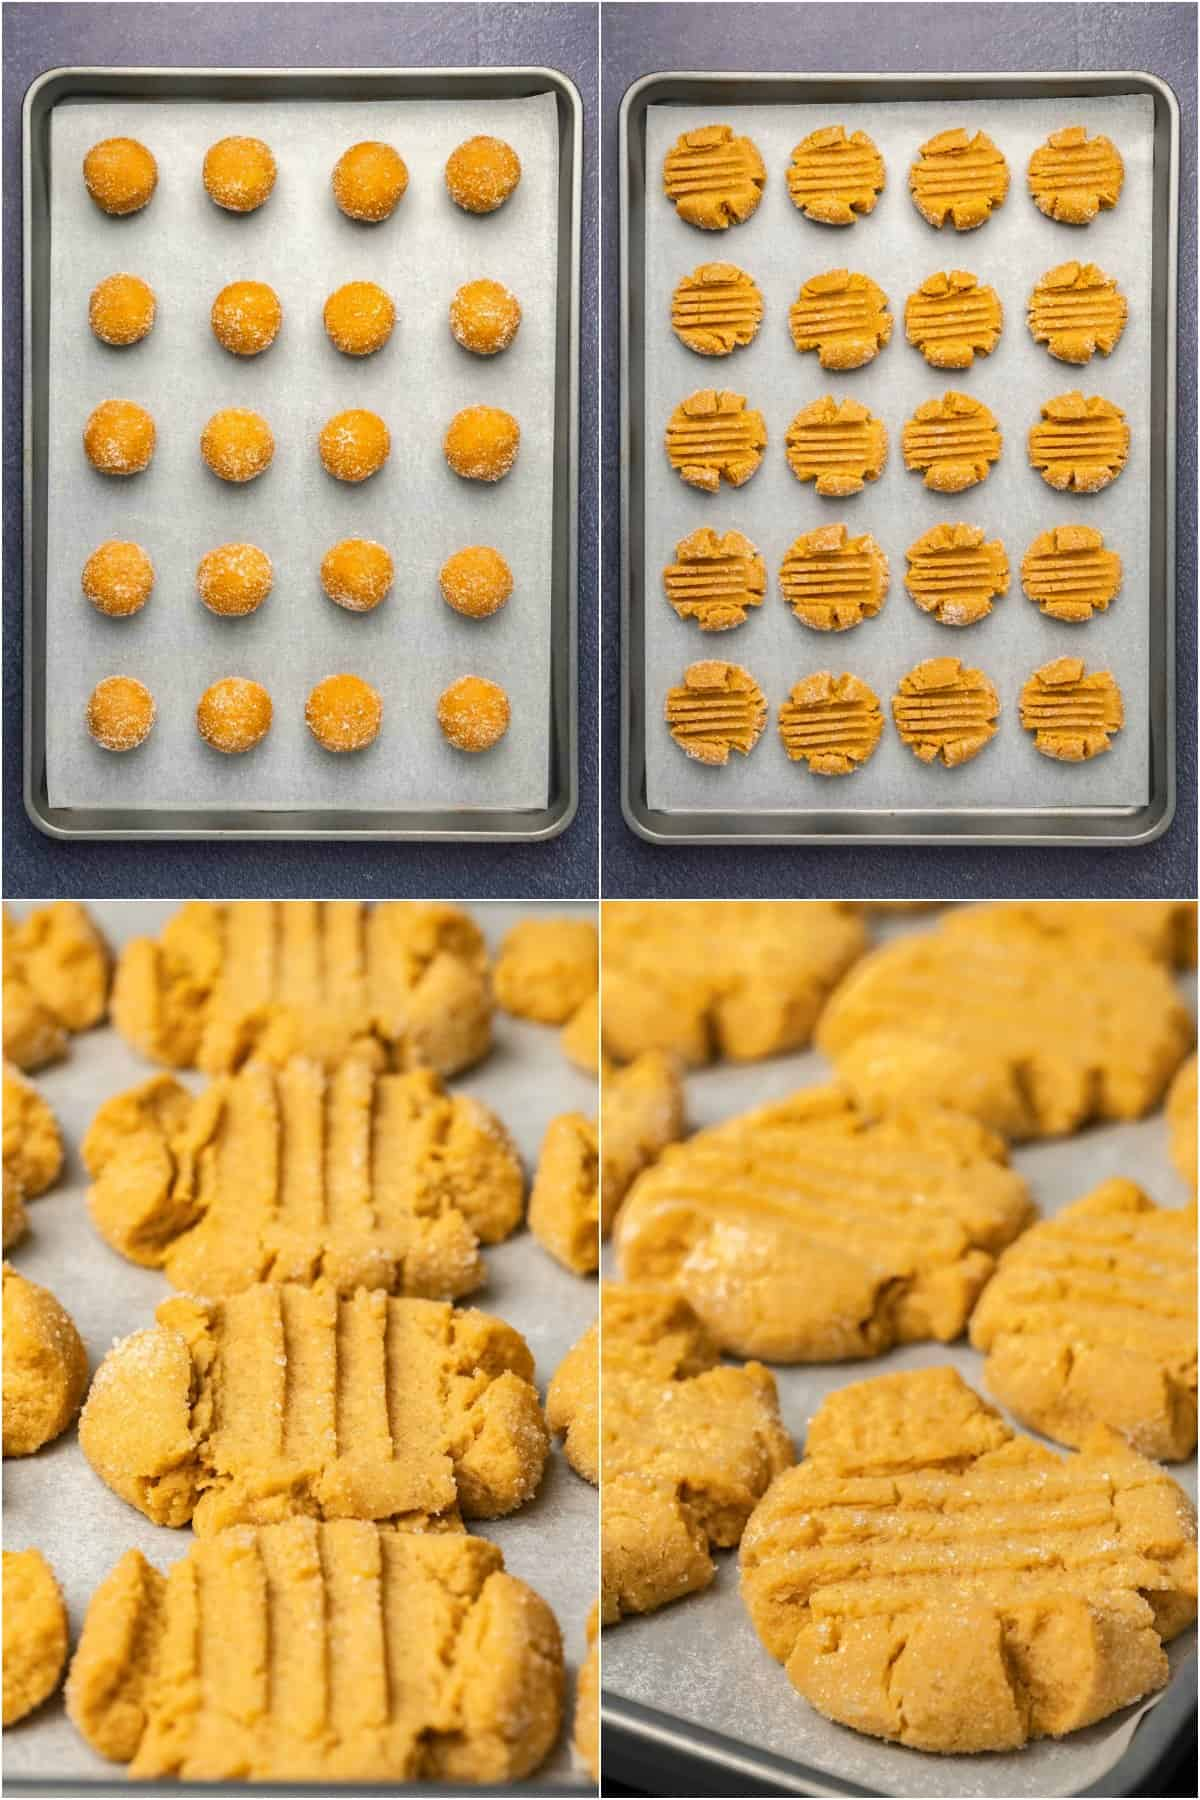 Step by step process photo collage of making peanut butter cookies.